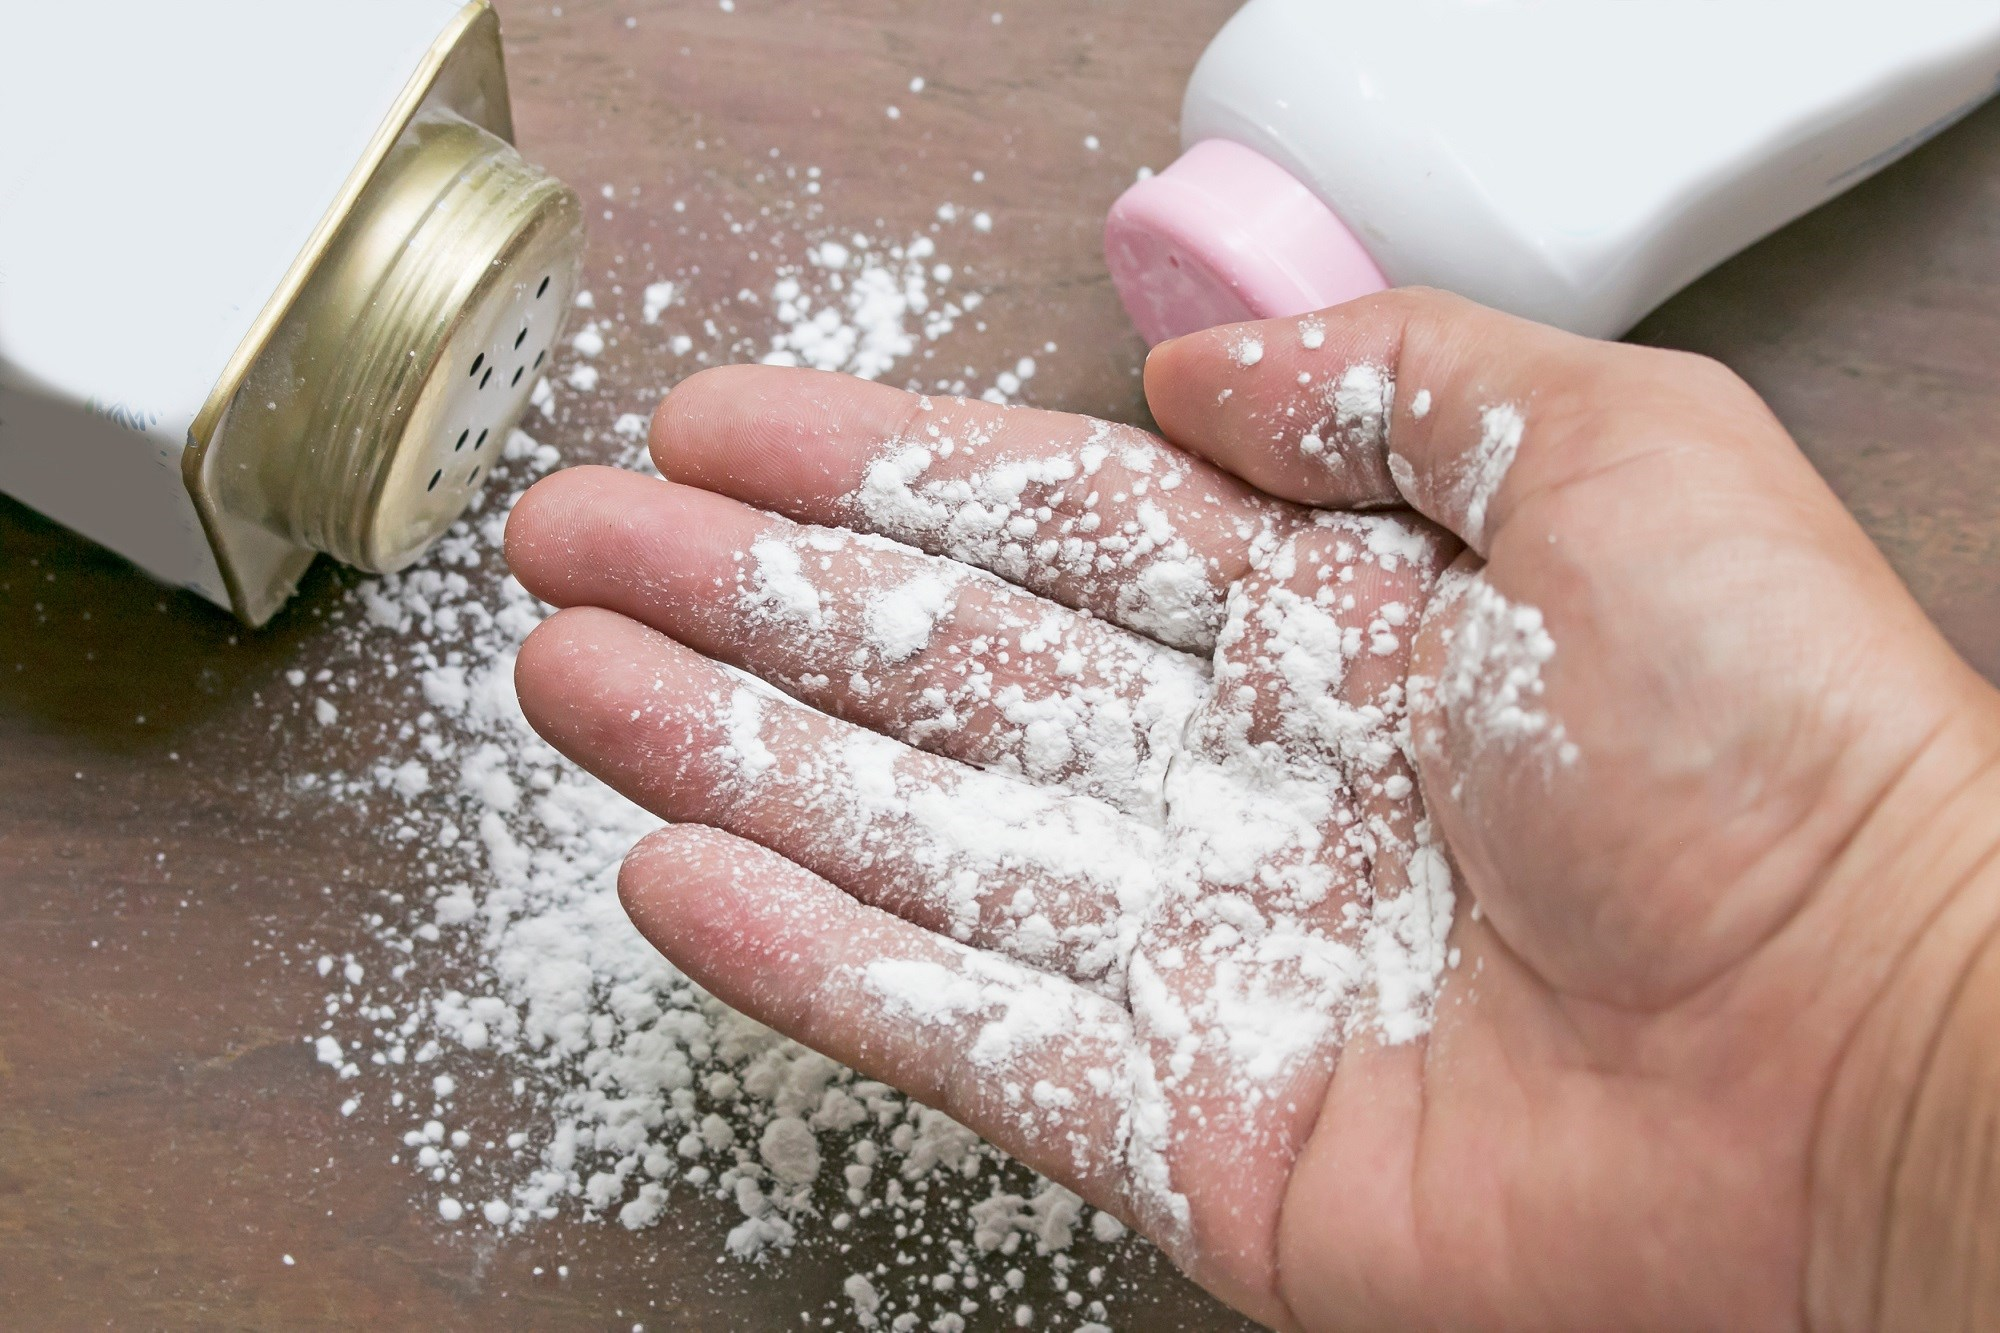 Jury Awards 4.62B in Johnson  Johnson Talcum Powder Lawsuit